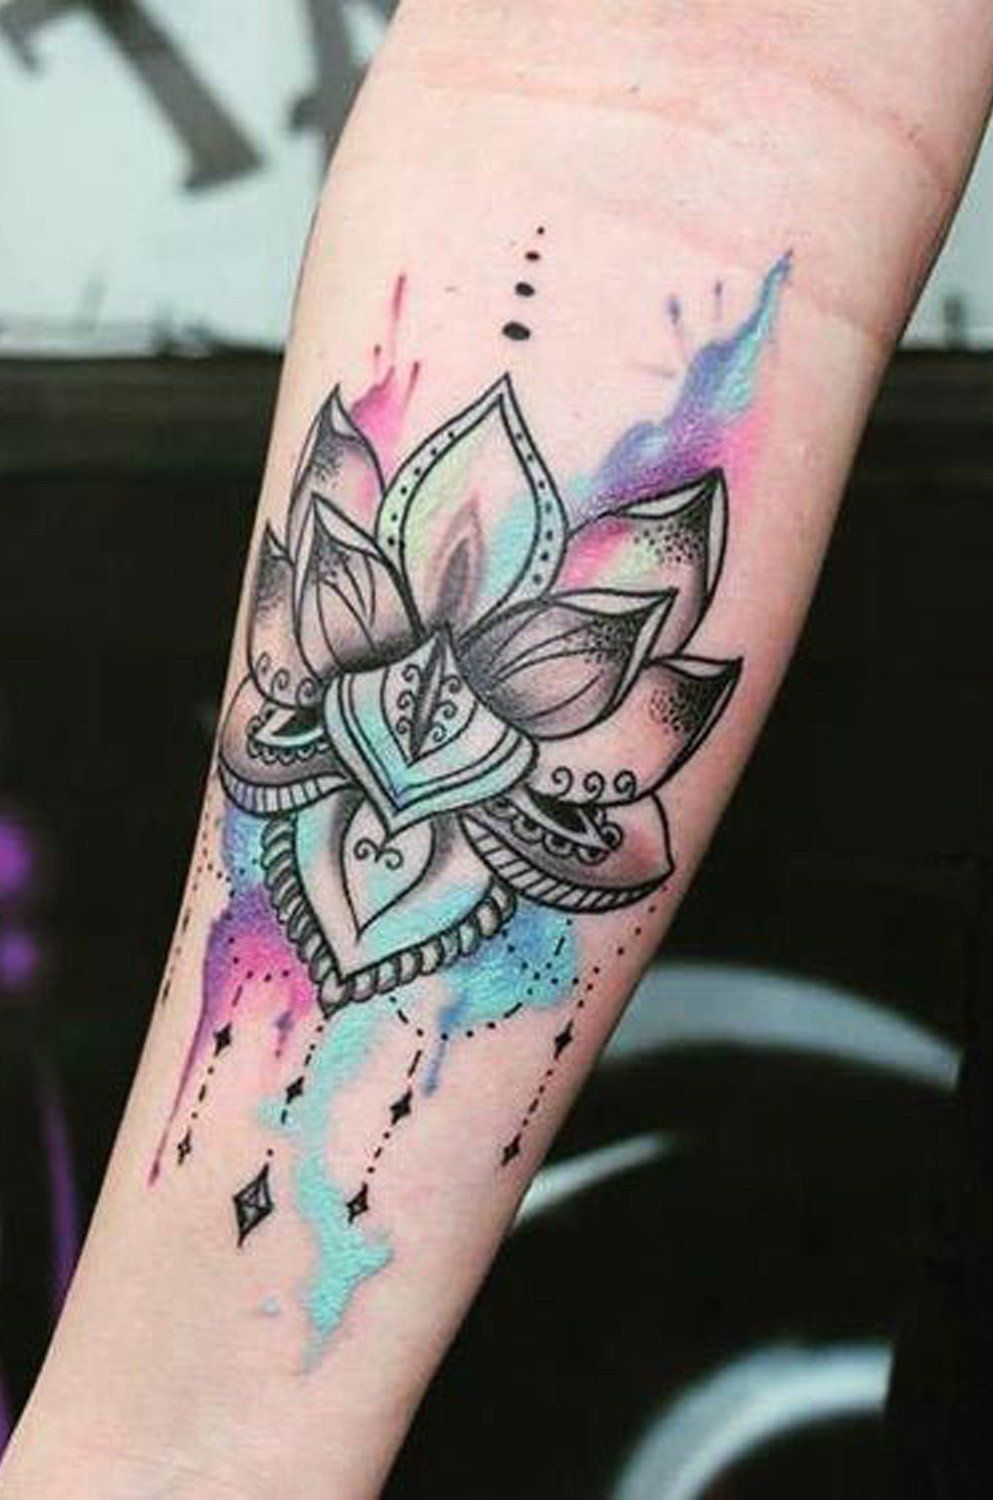 Watercolor Lotus Flower Wrist Tattoo Ideas For Women At Mybodiart